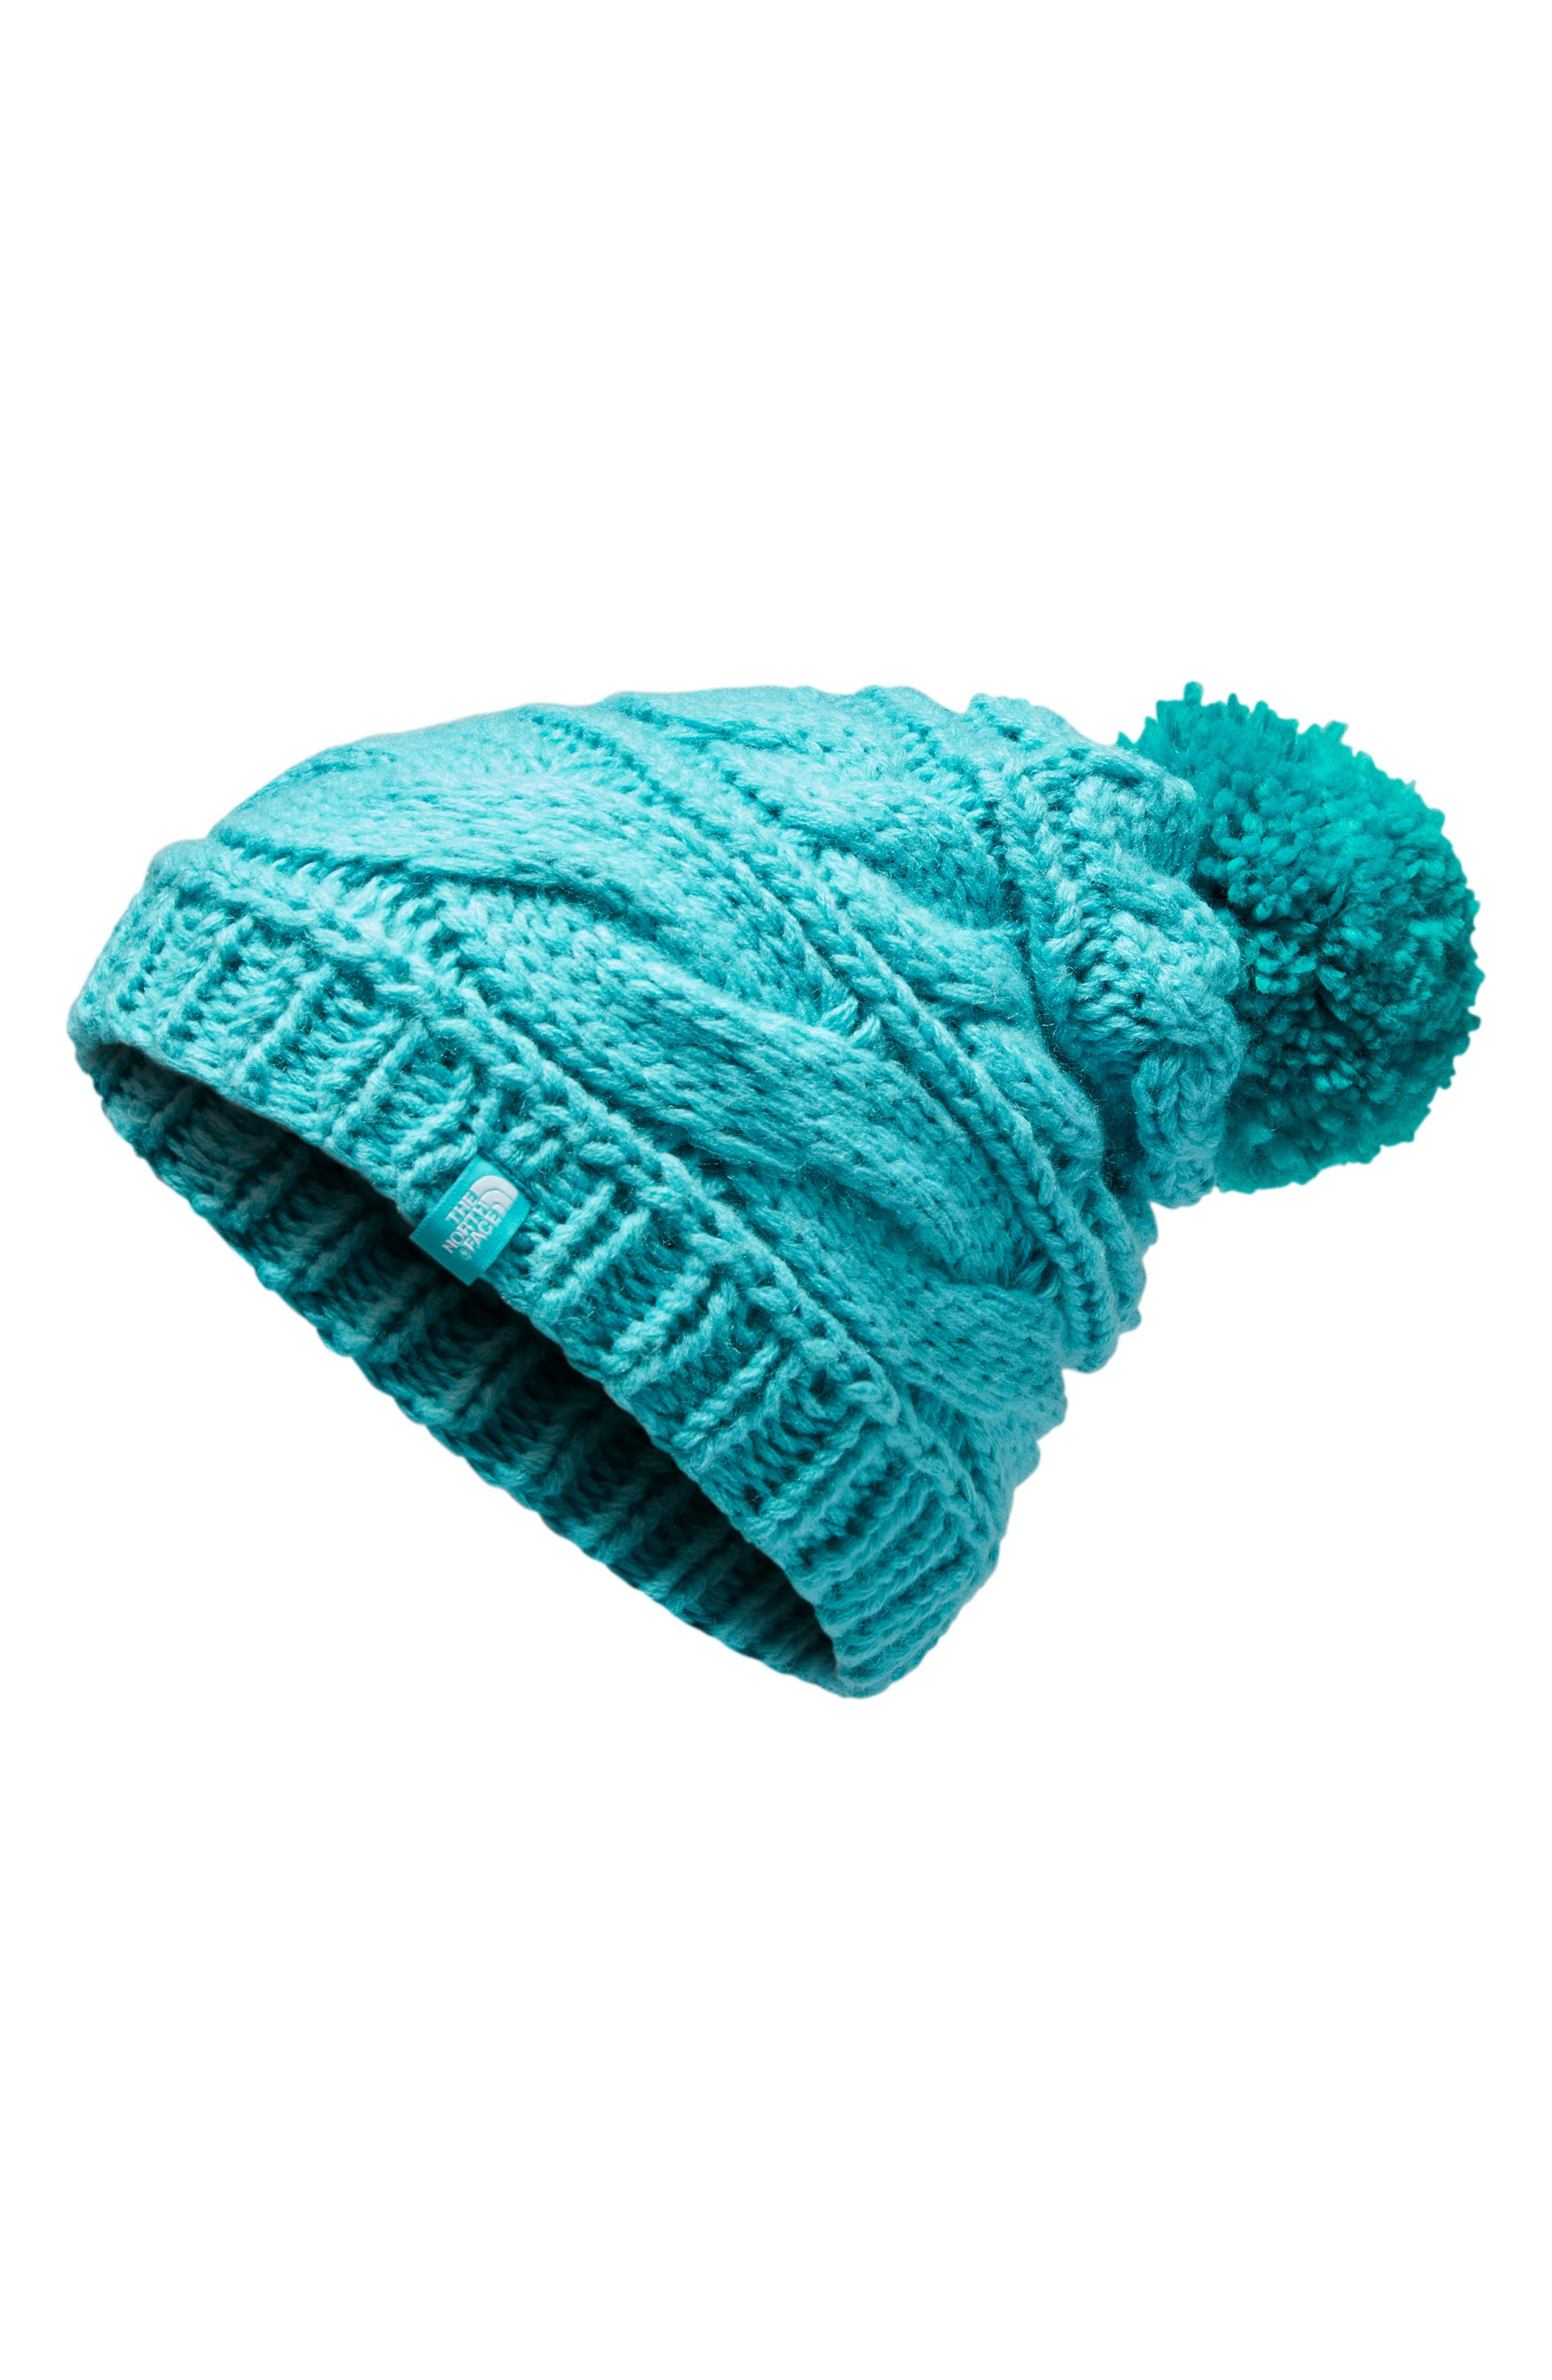 Triple Cable Beanie,                             Main thumbnail 1, color,                             401